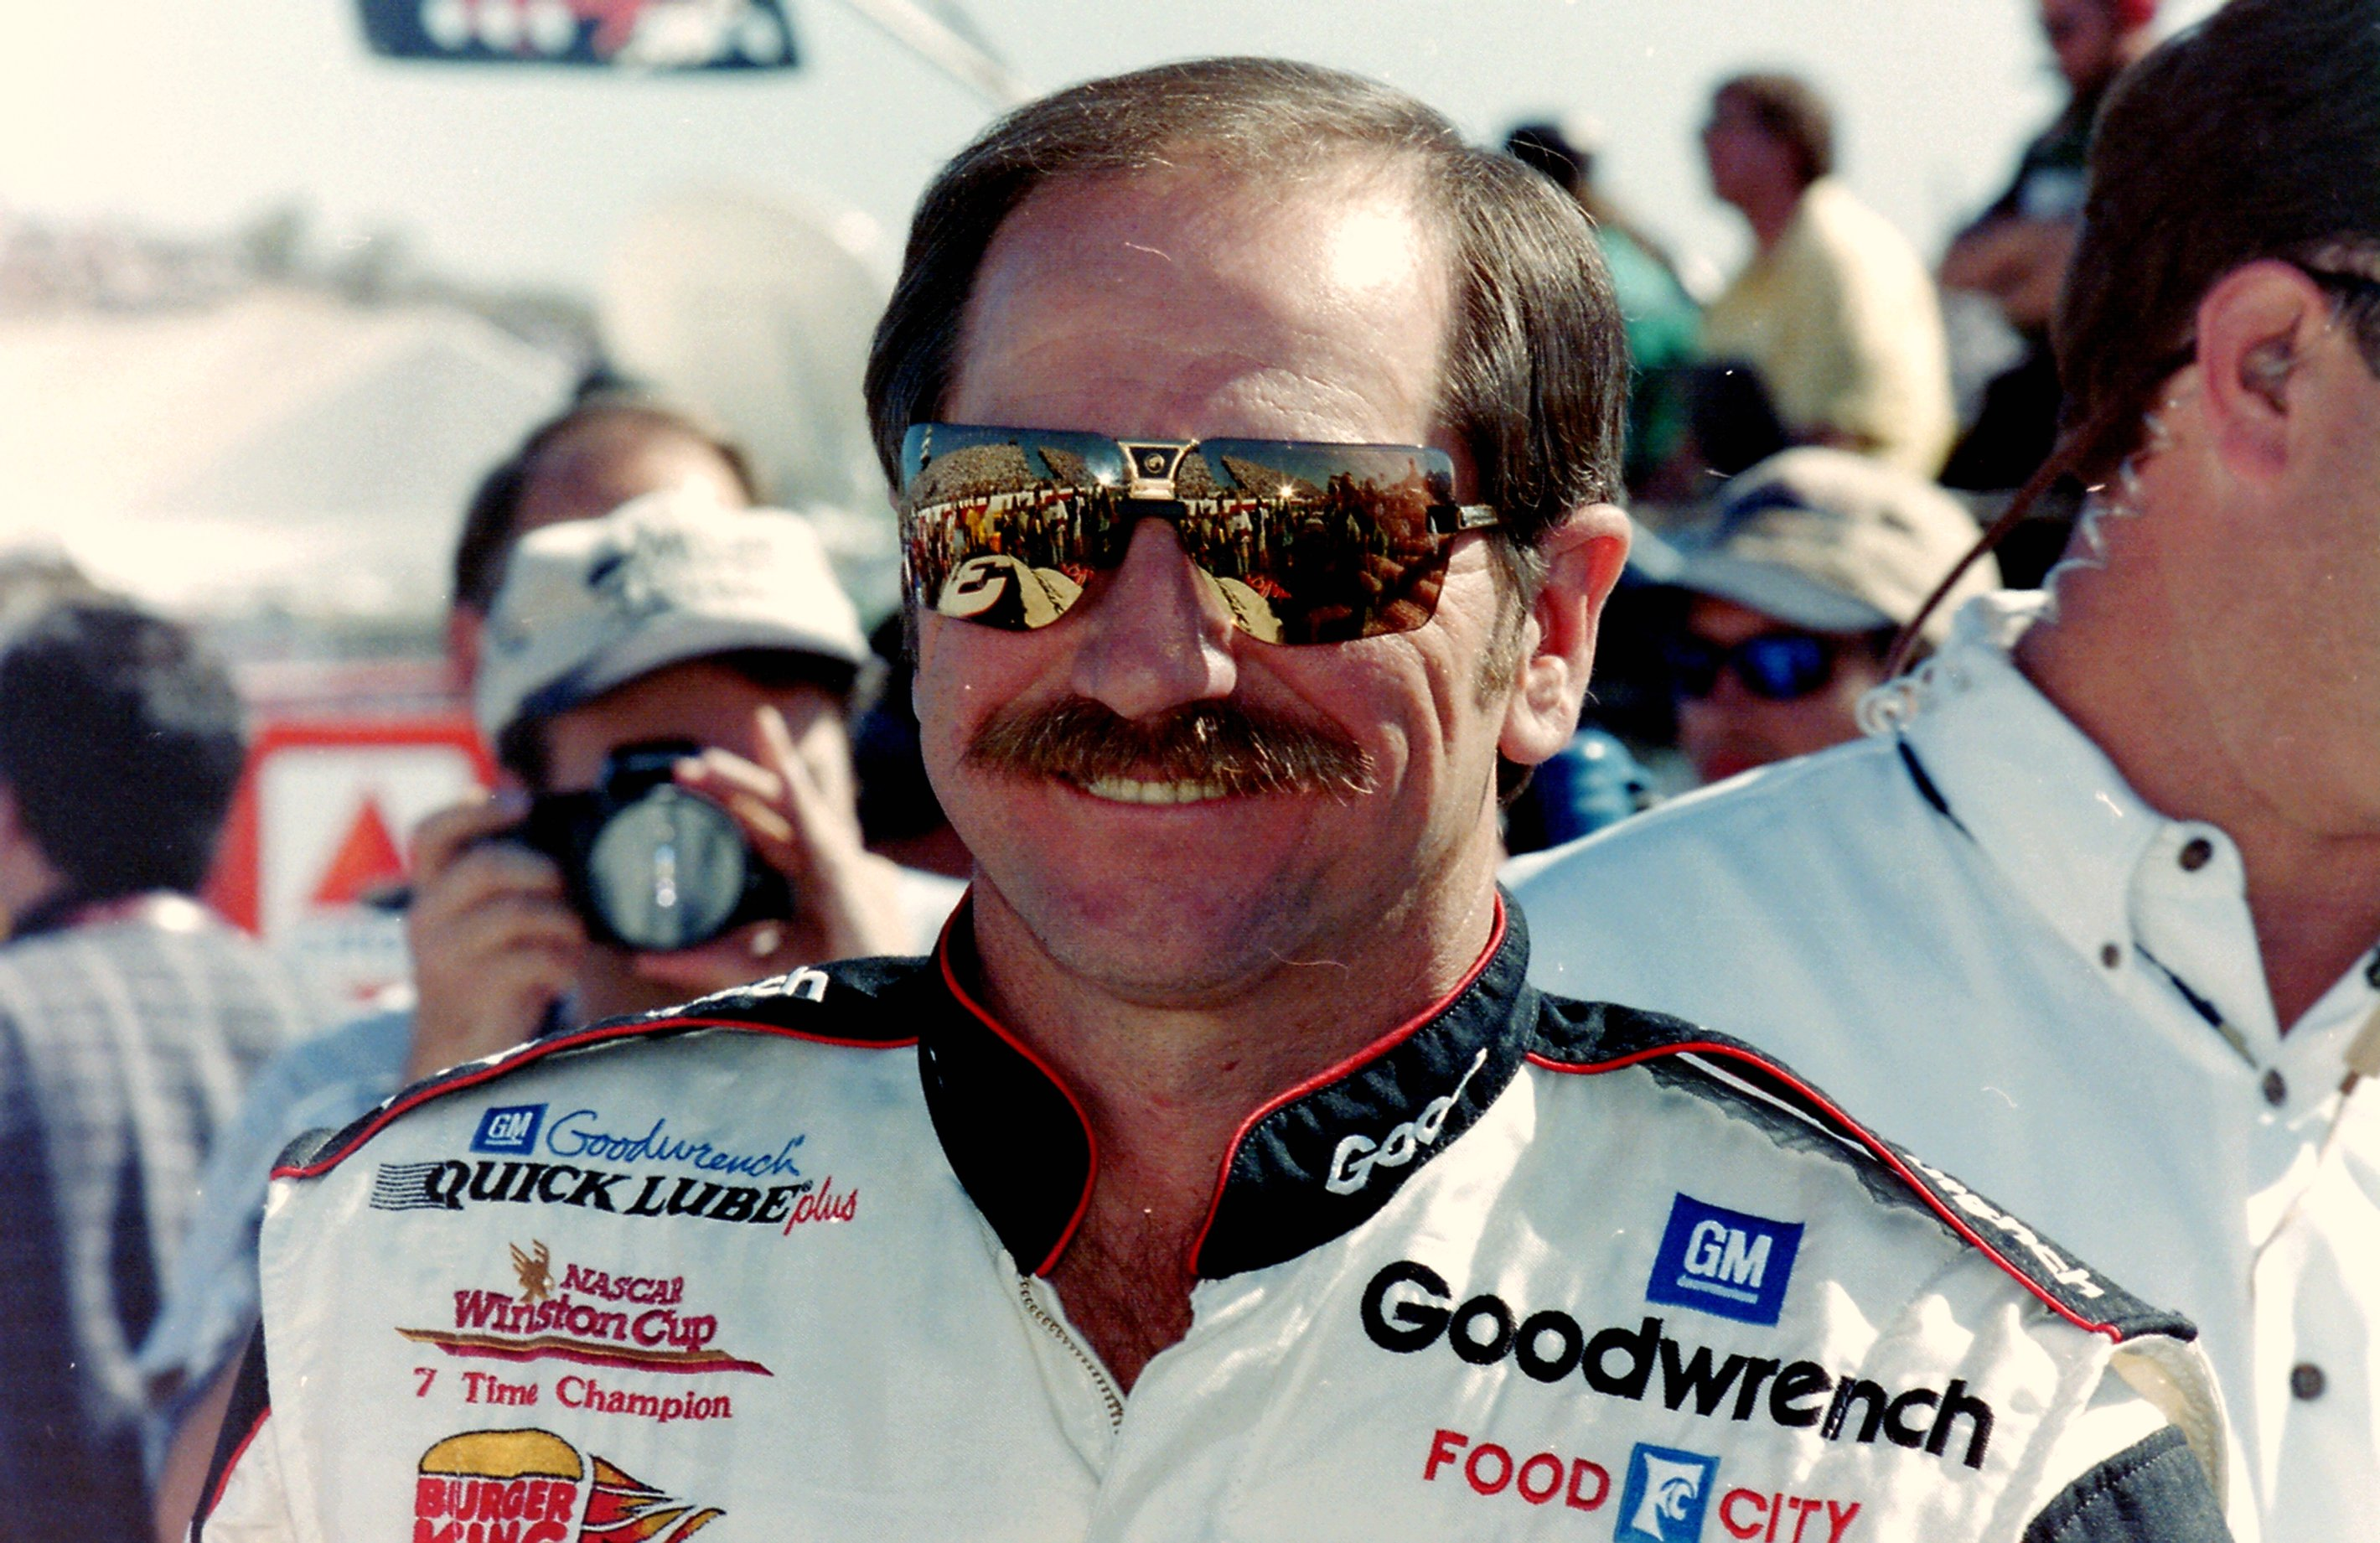 Dale Earnhardt Sunglasses Drivers Suit